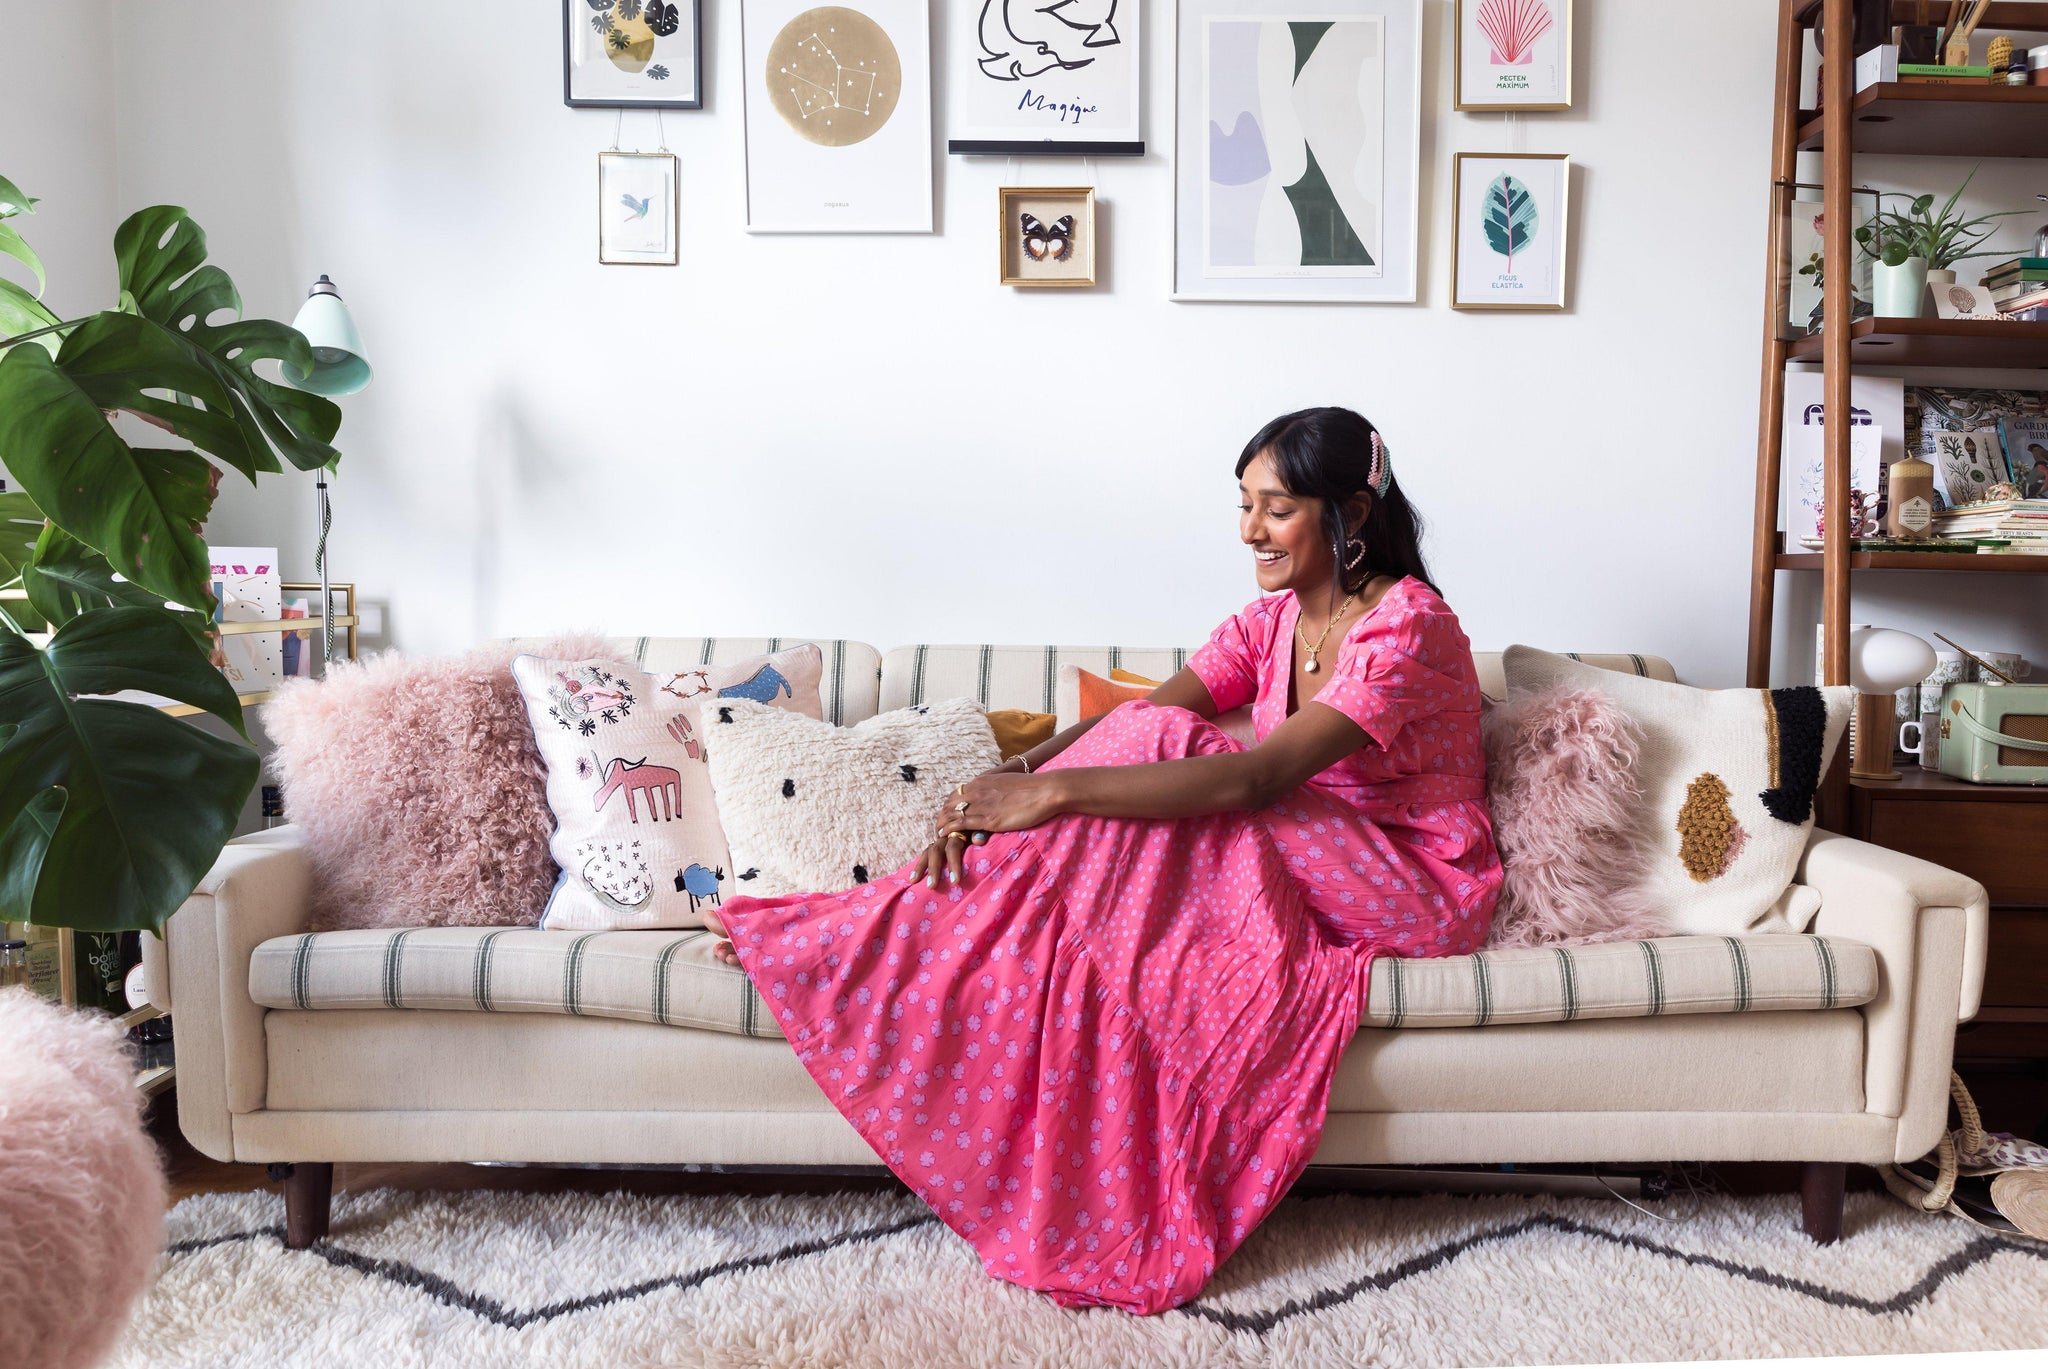 Dreamer | Yawn Meets Art Director Zeena Shah